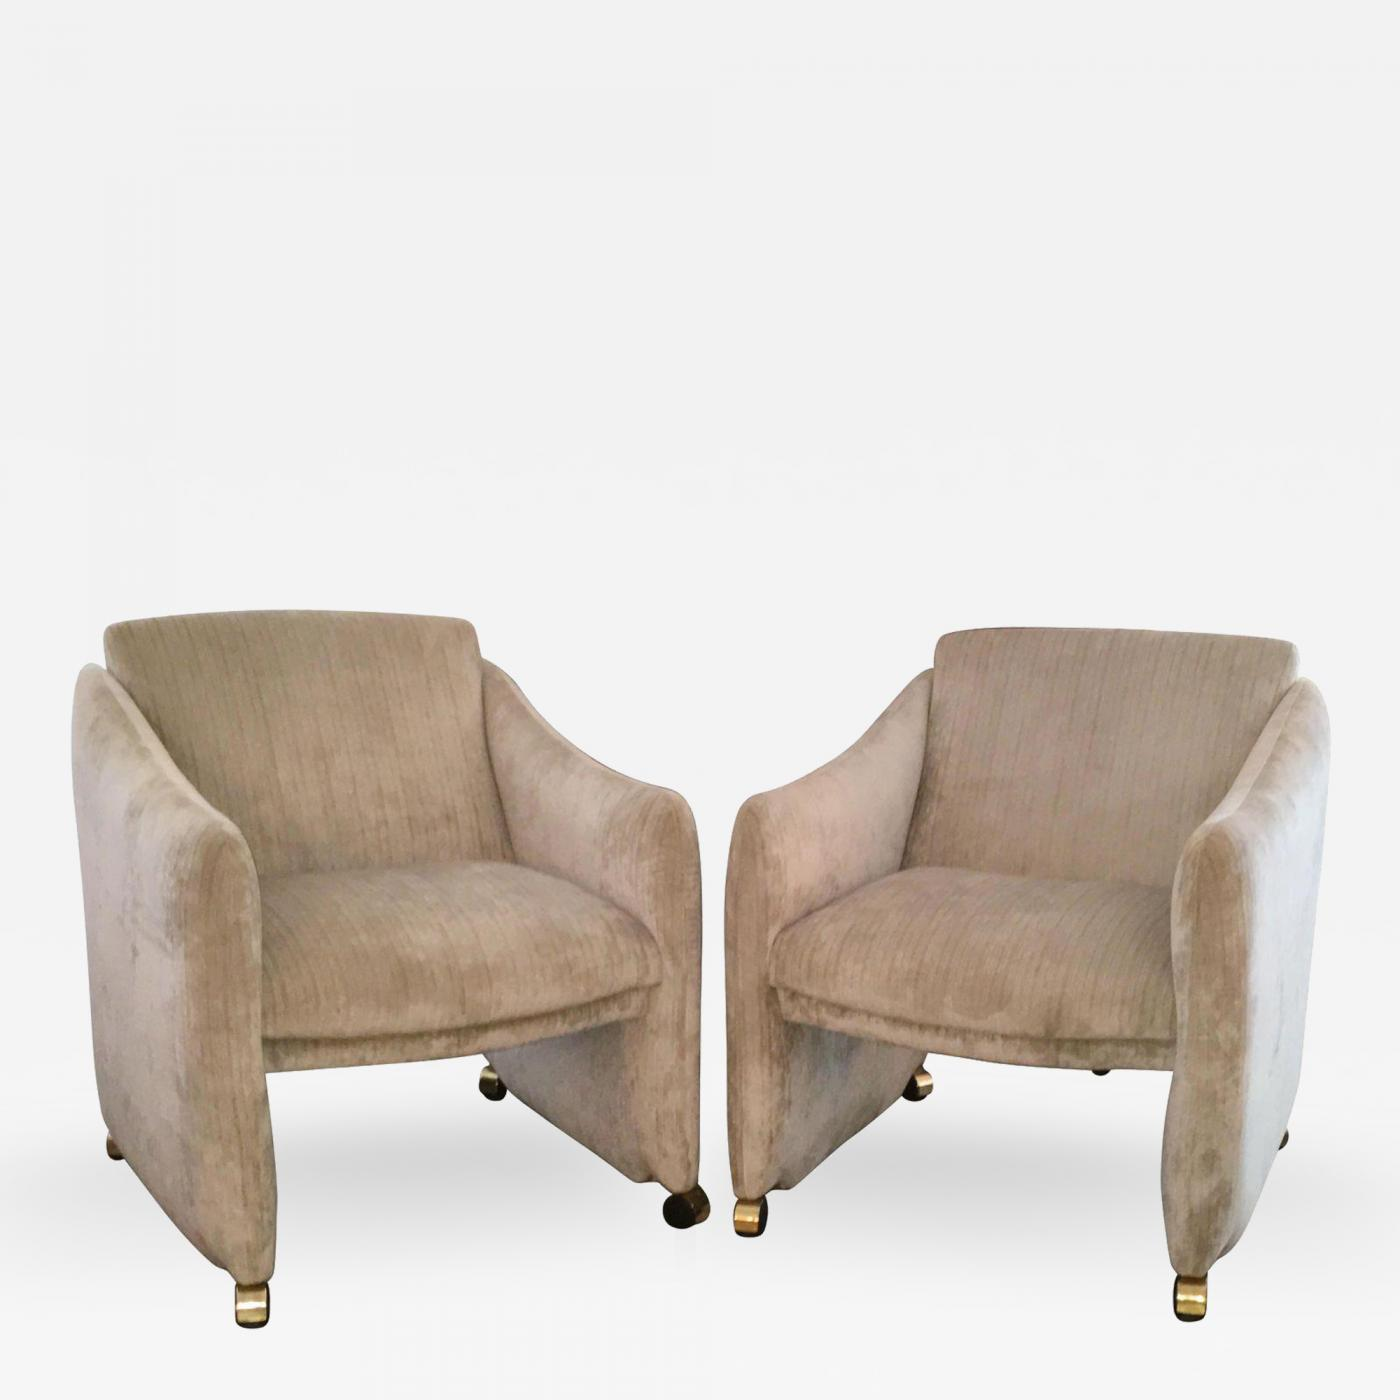 Milo Baughman Pair of Mid Century Modern Velvet Lounge Chairs on